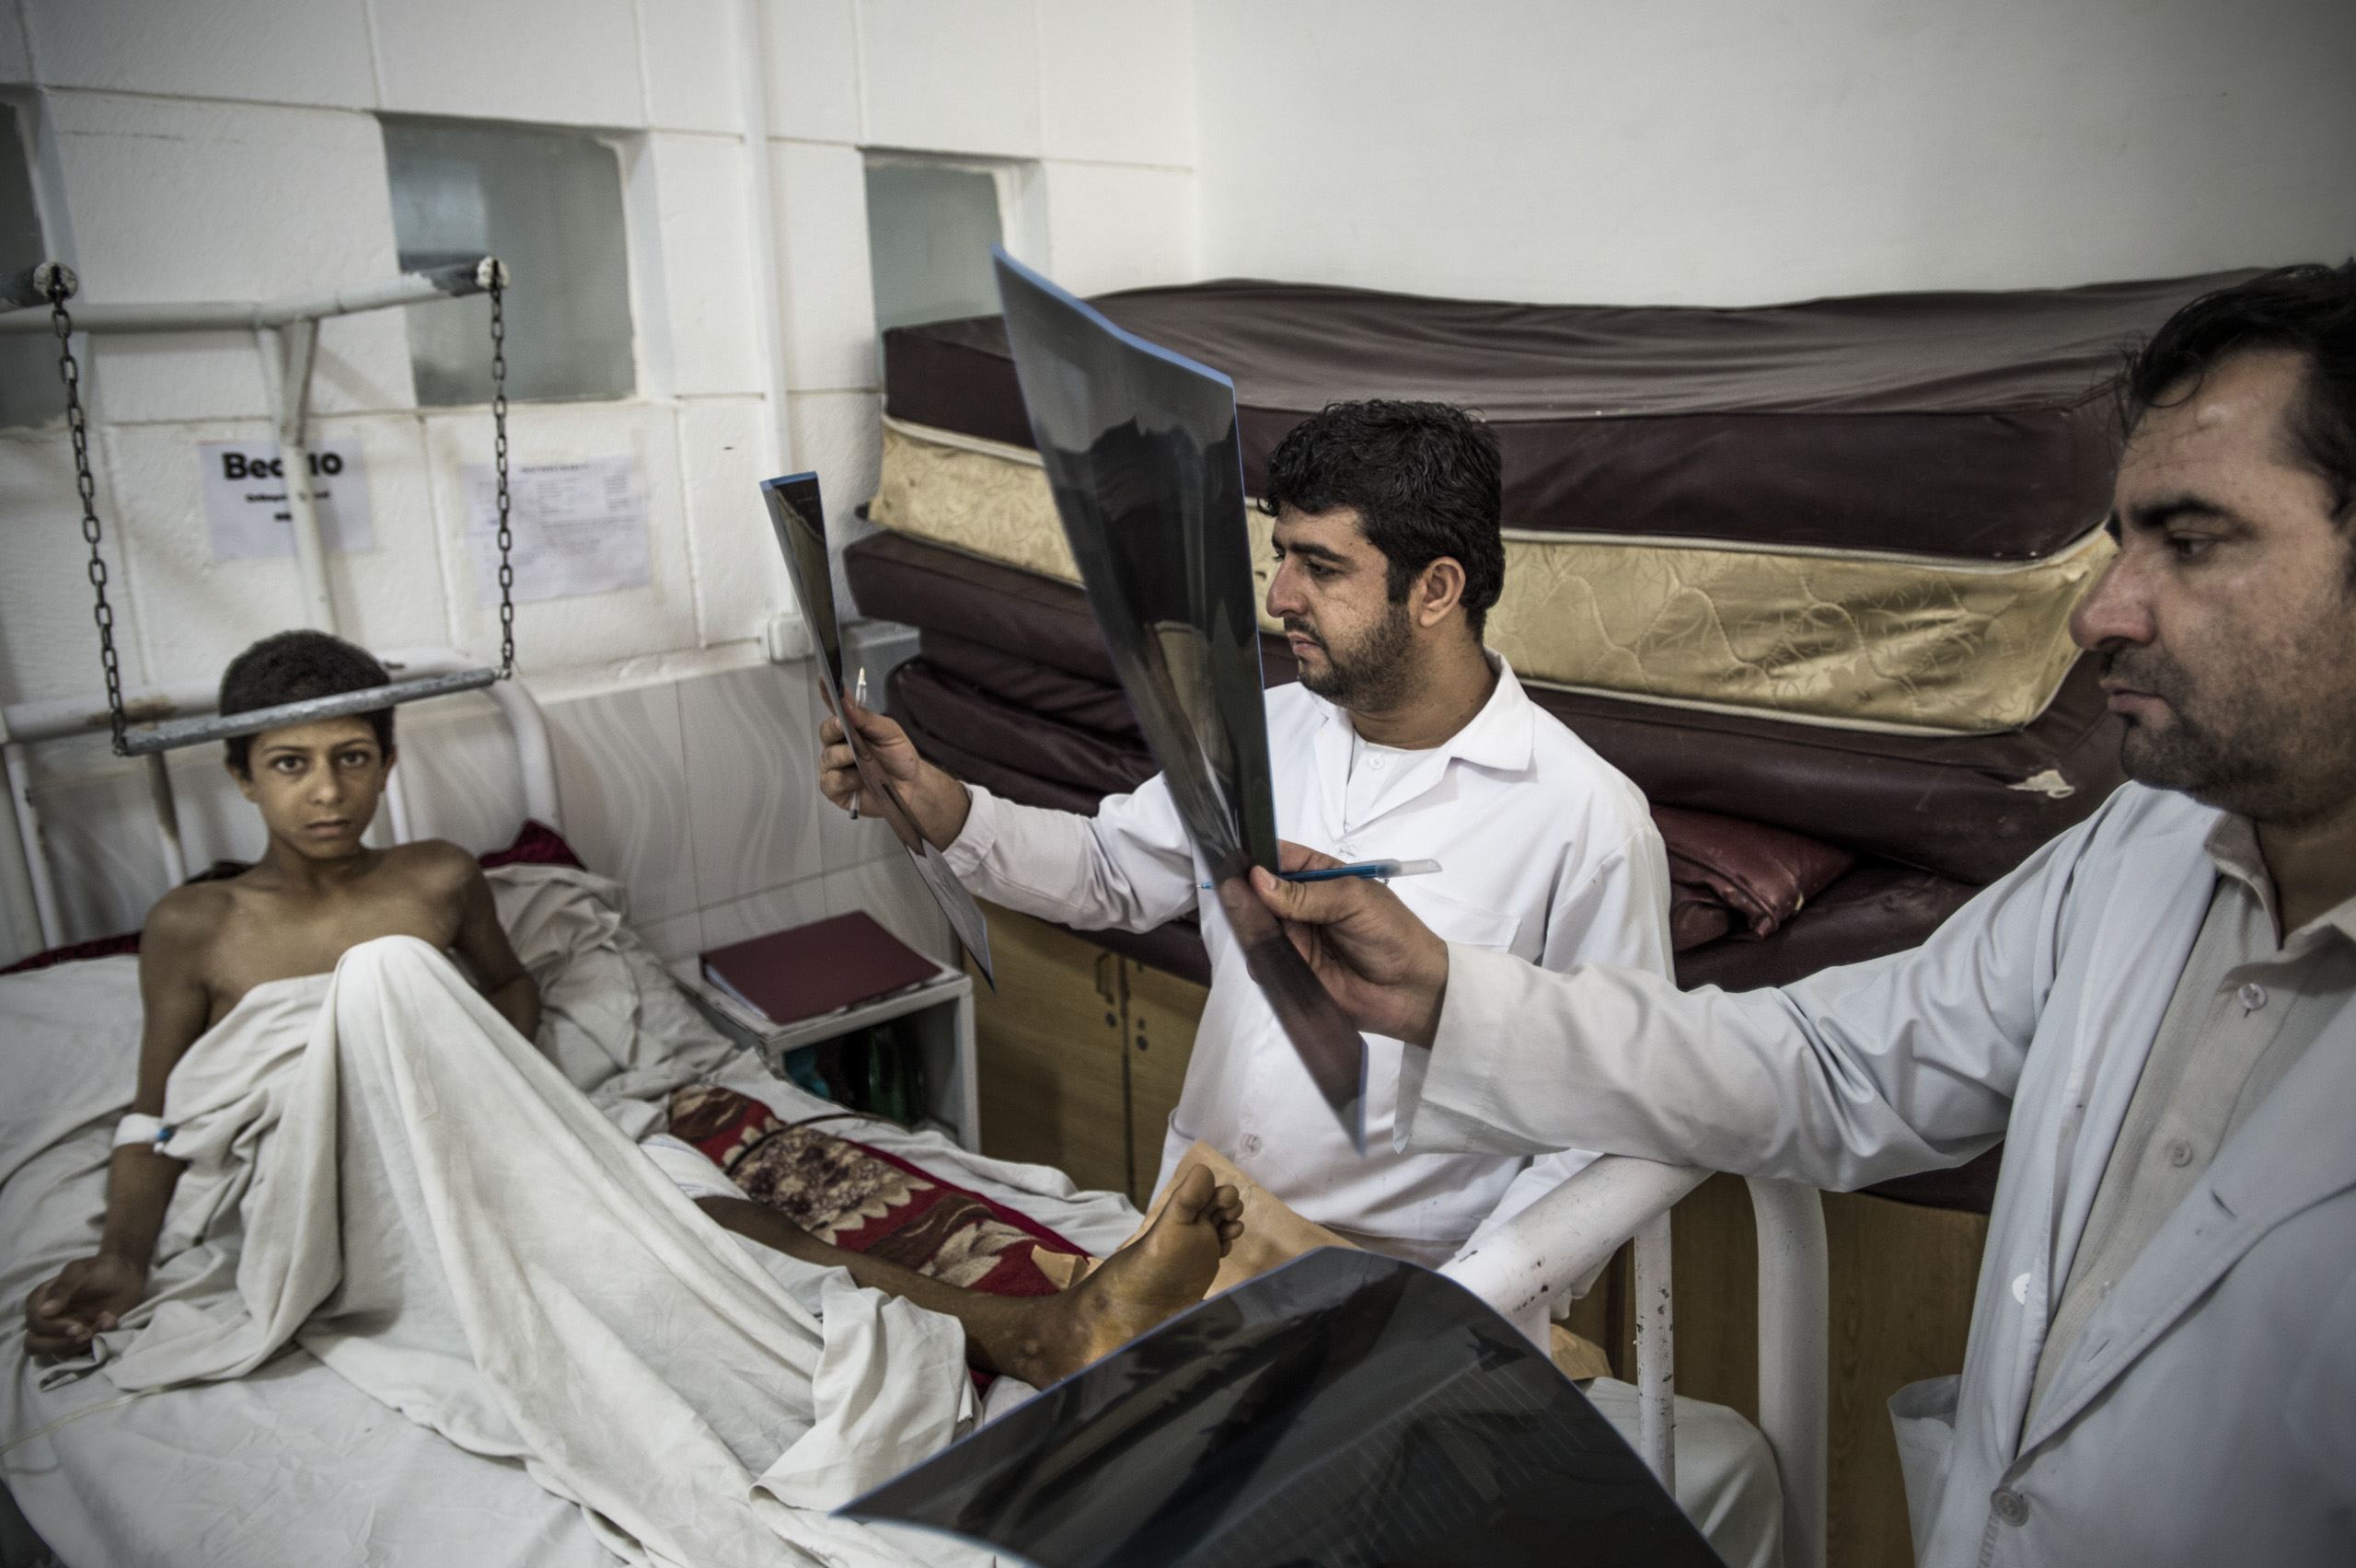 Nissan is examined in the orthopedic ward by a surgeon, Dr. Mohammadin Narriwal, in a hospital run by Doctors Without Borders, Lashkar Gah, Helmand, Afghanistan, June 2016.